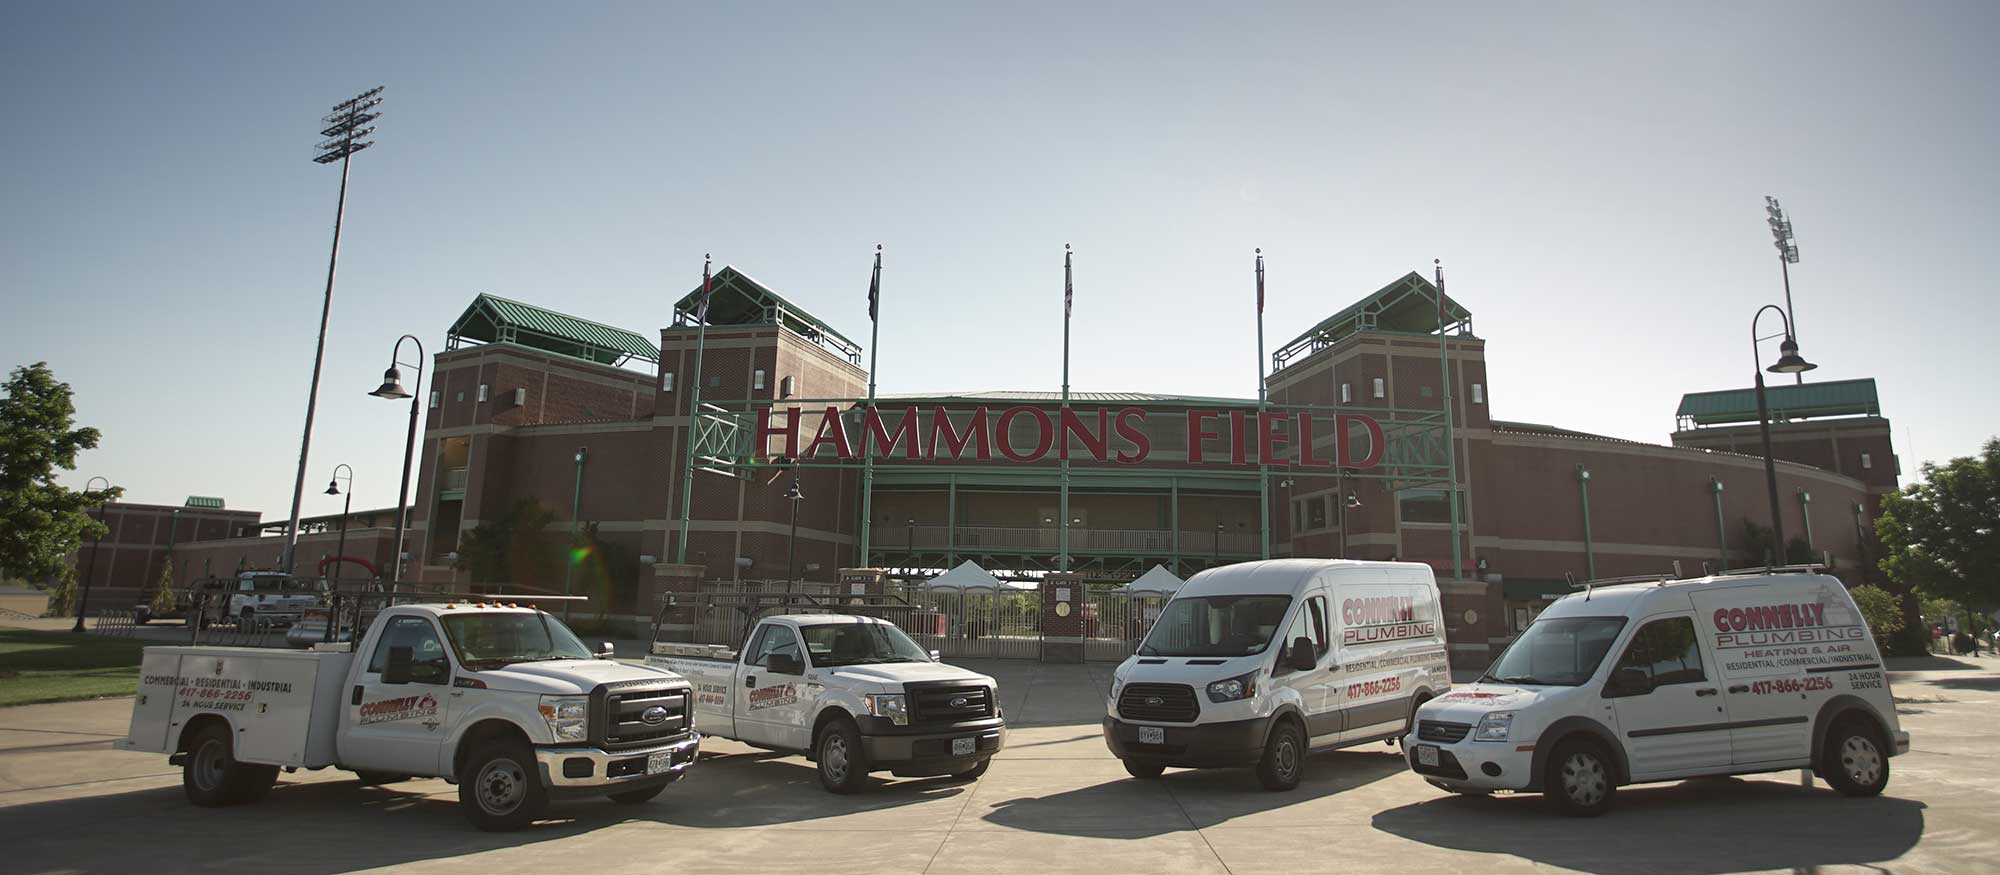 connelly-fleet-at-hammons-field